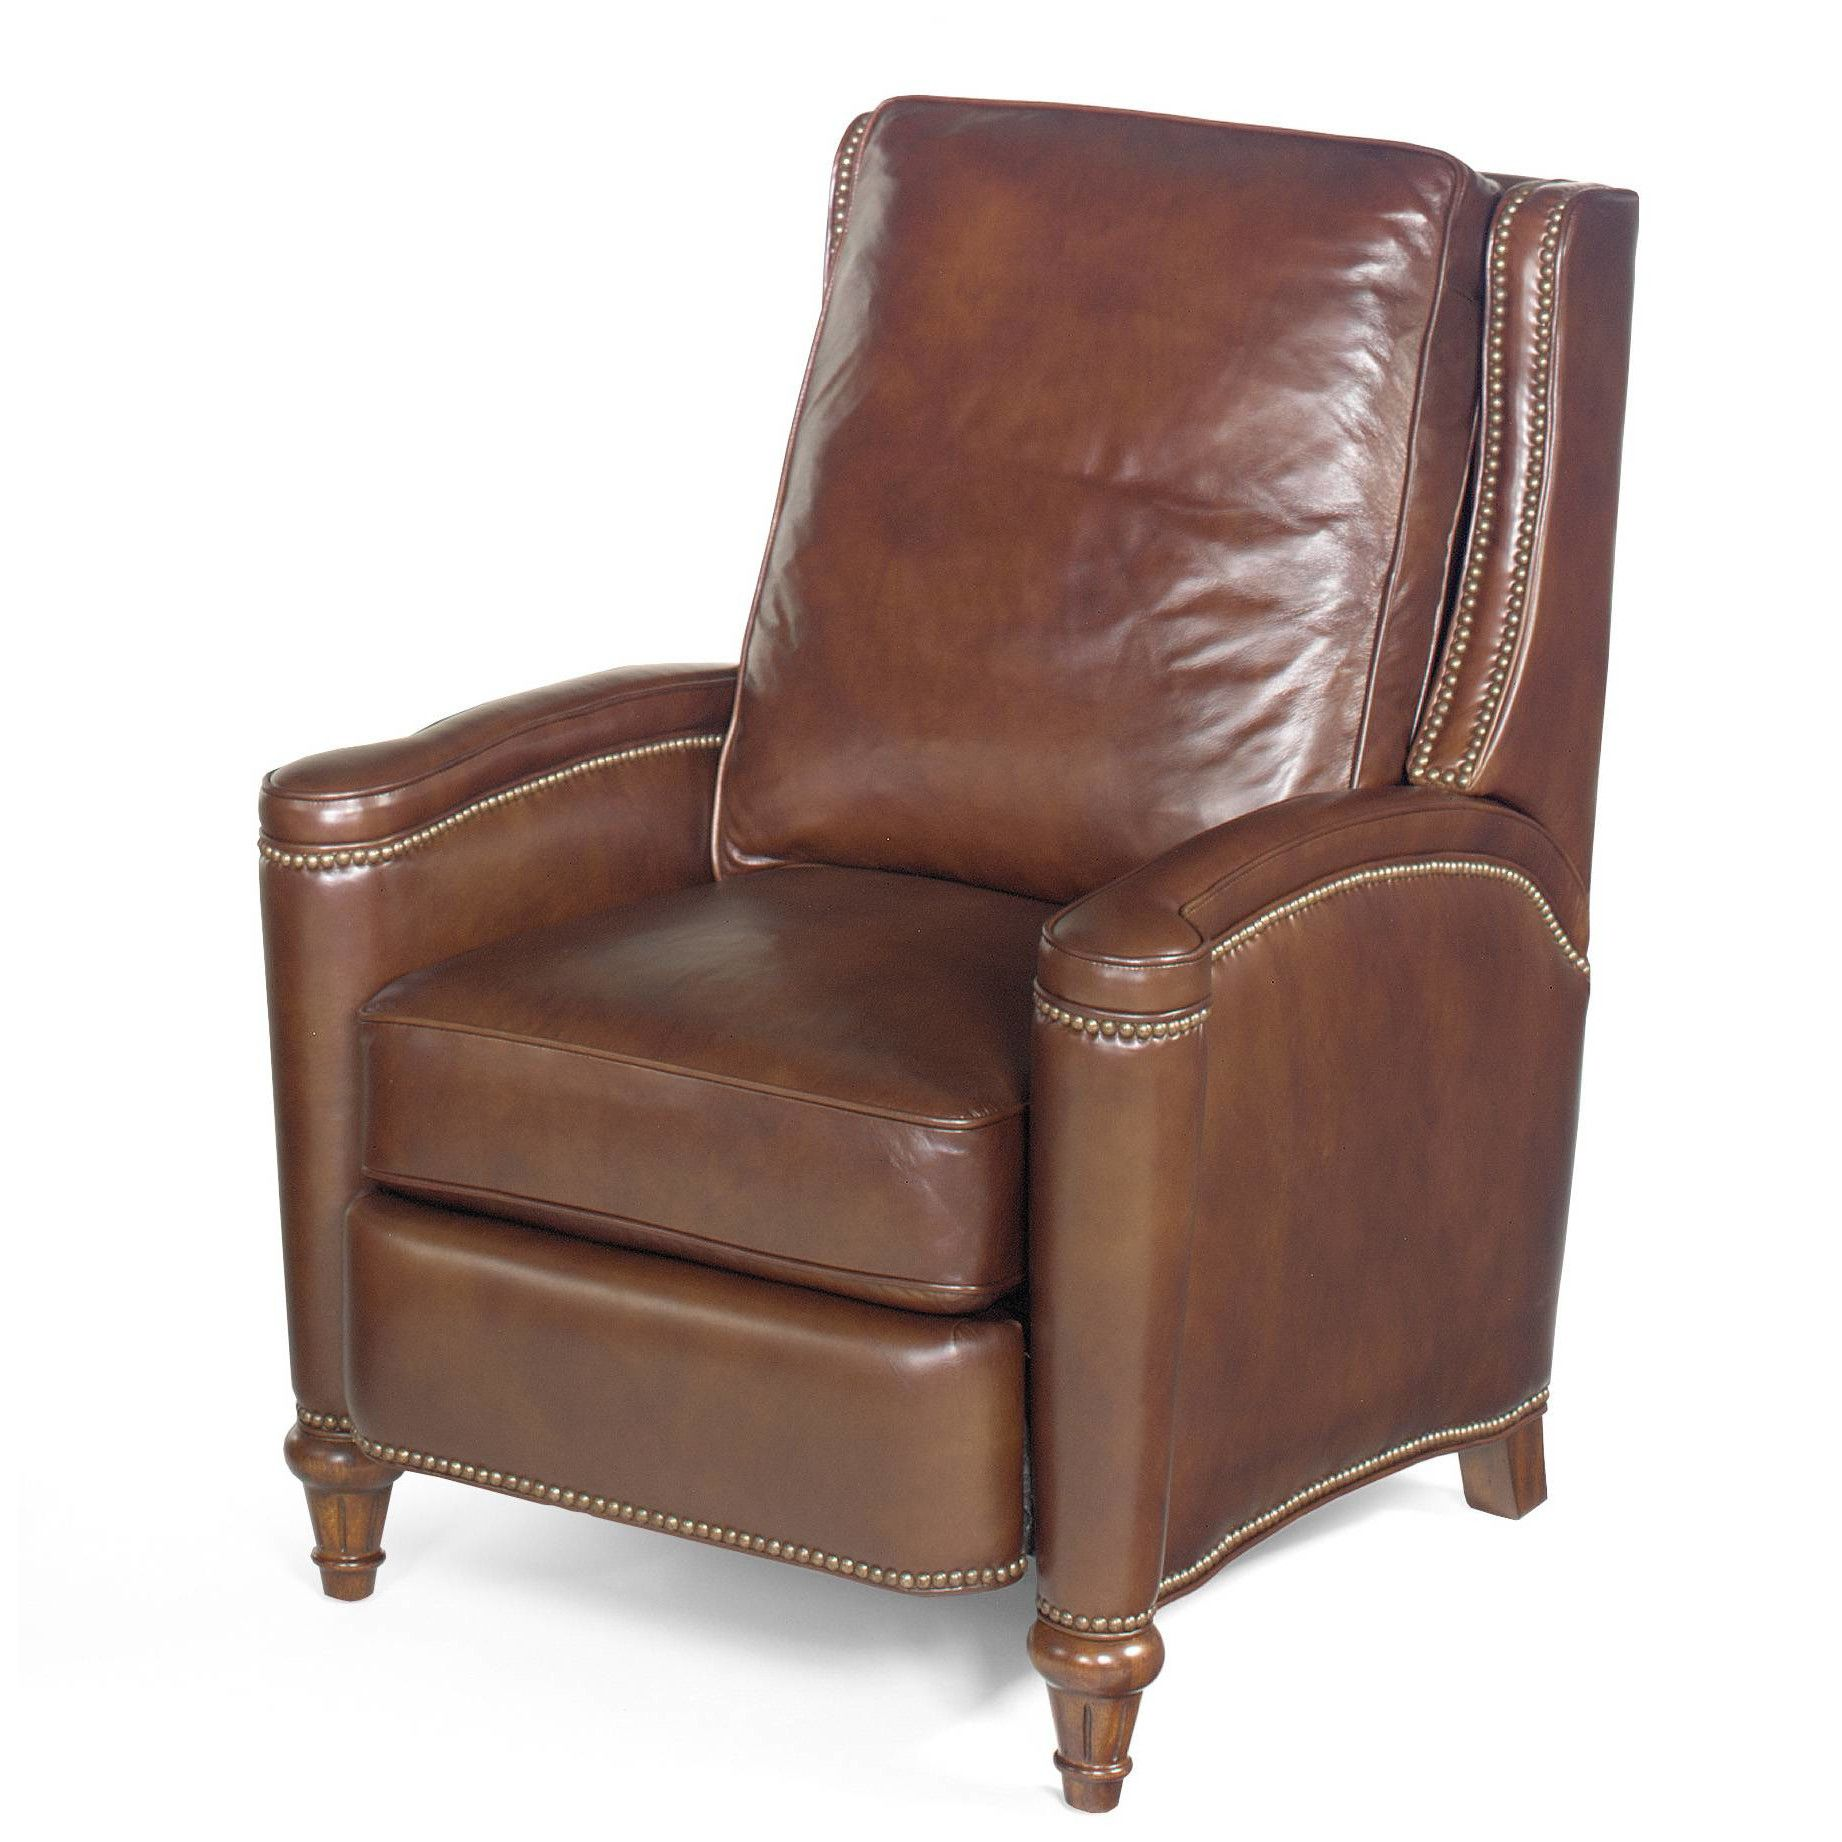 Customer Image Zoomed Leather recliner, Brown leather